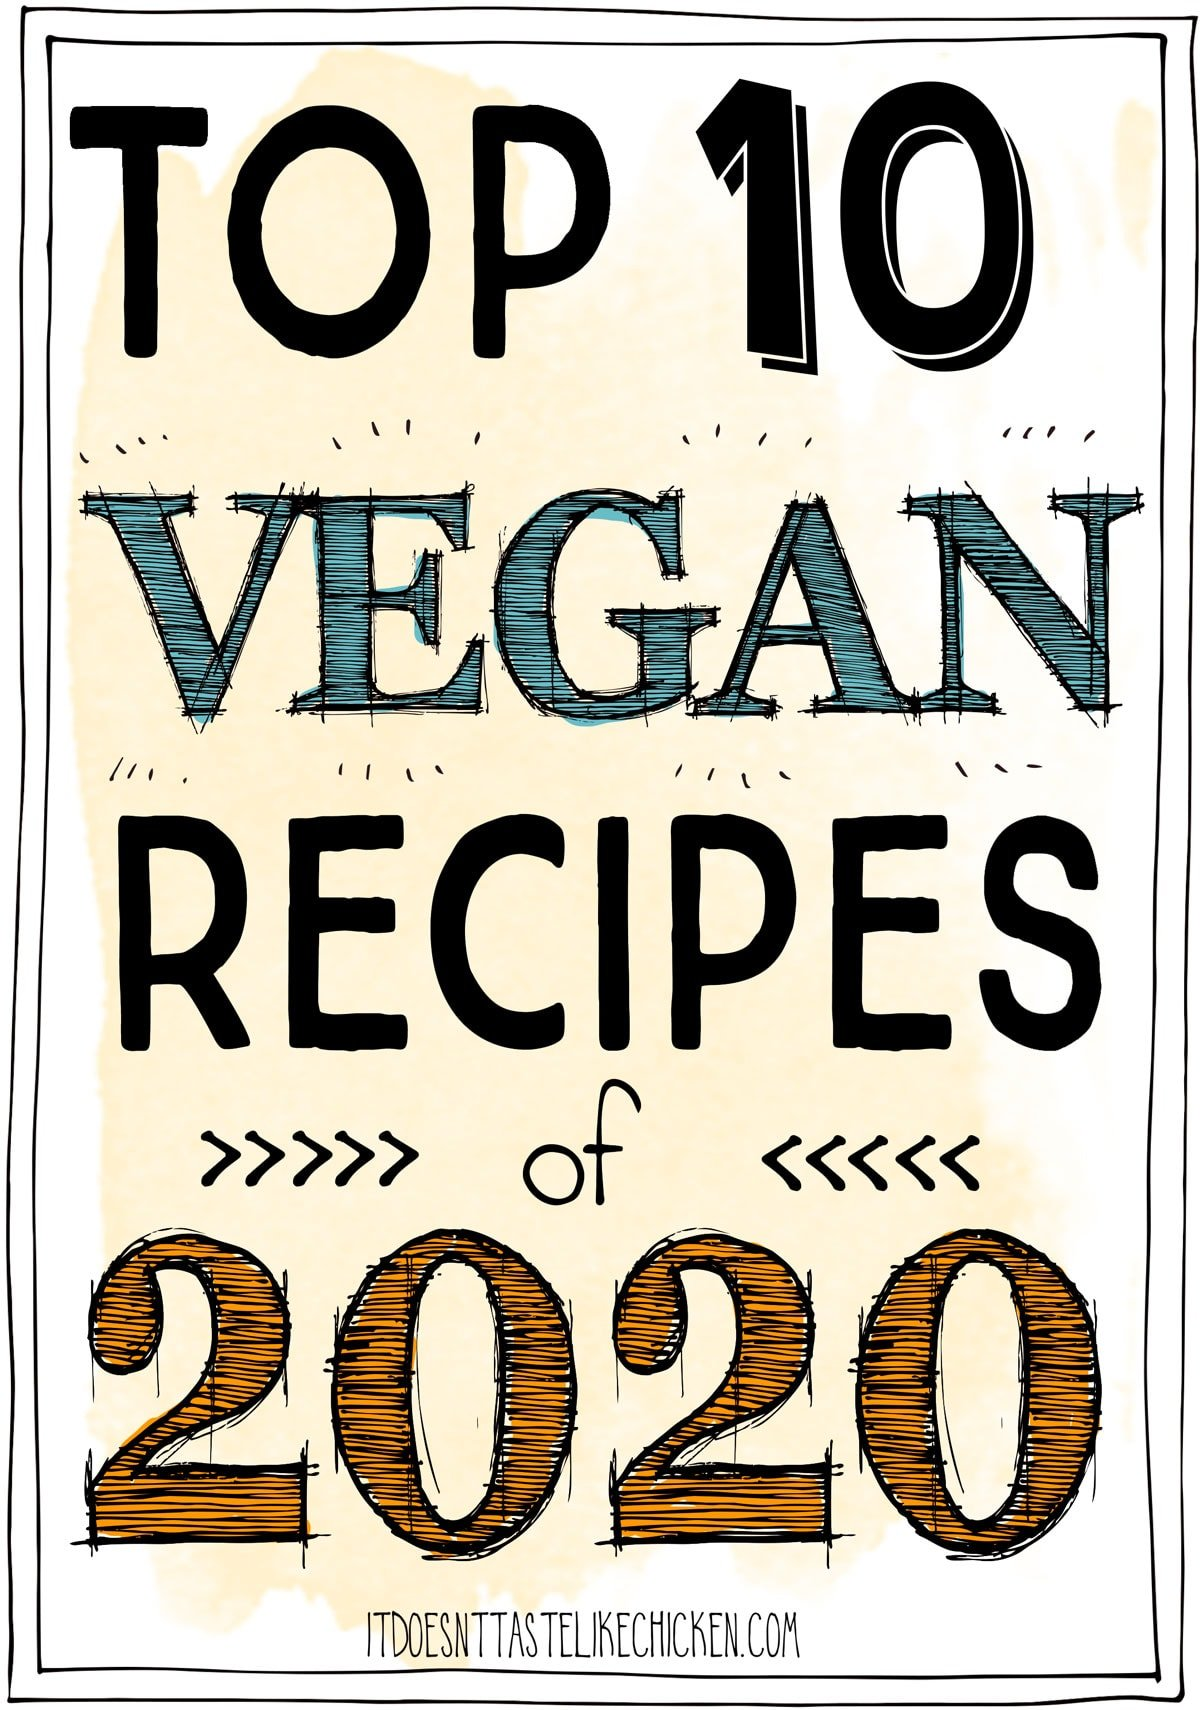 The results are in. Here are the Top 10 Vegan Recipes of 2020! These are the most popular recipes of the year as voted by you!